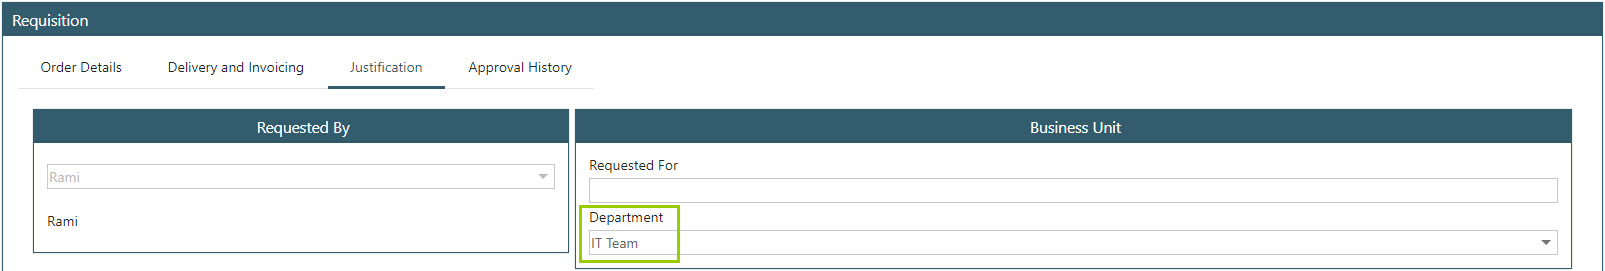 Sicon WAP Purchase Requisitions Help and User Guide - Requisition HUG Section 18.3 Image 1